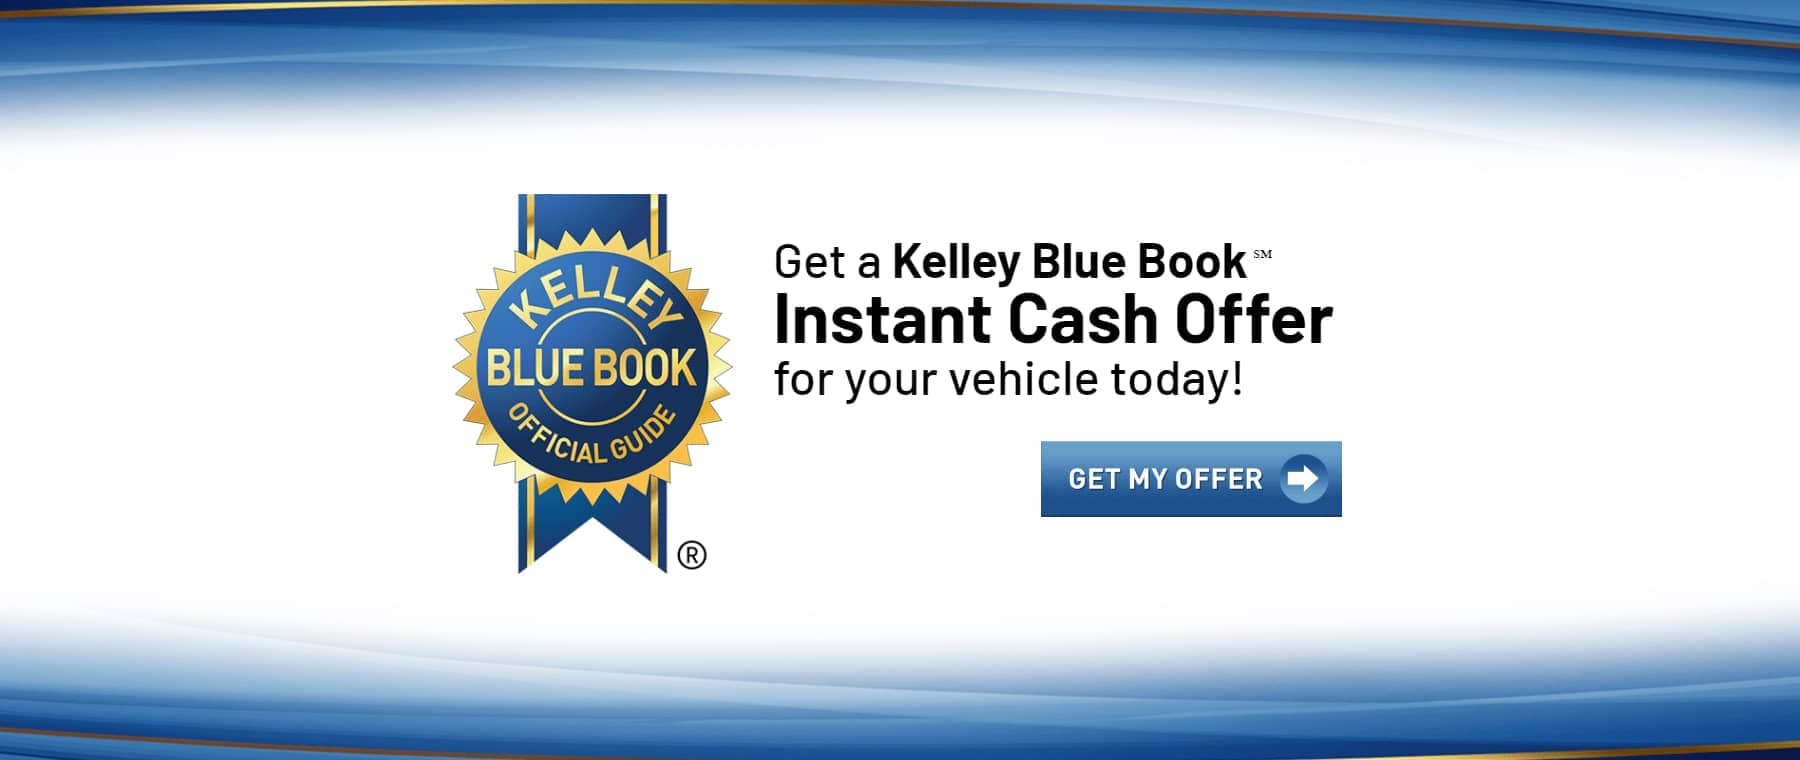 Get a Kelley Blue Book Instant Cash Offer for your vehicle today!